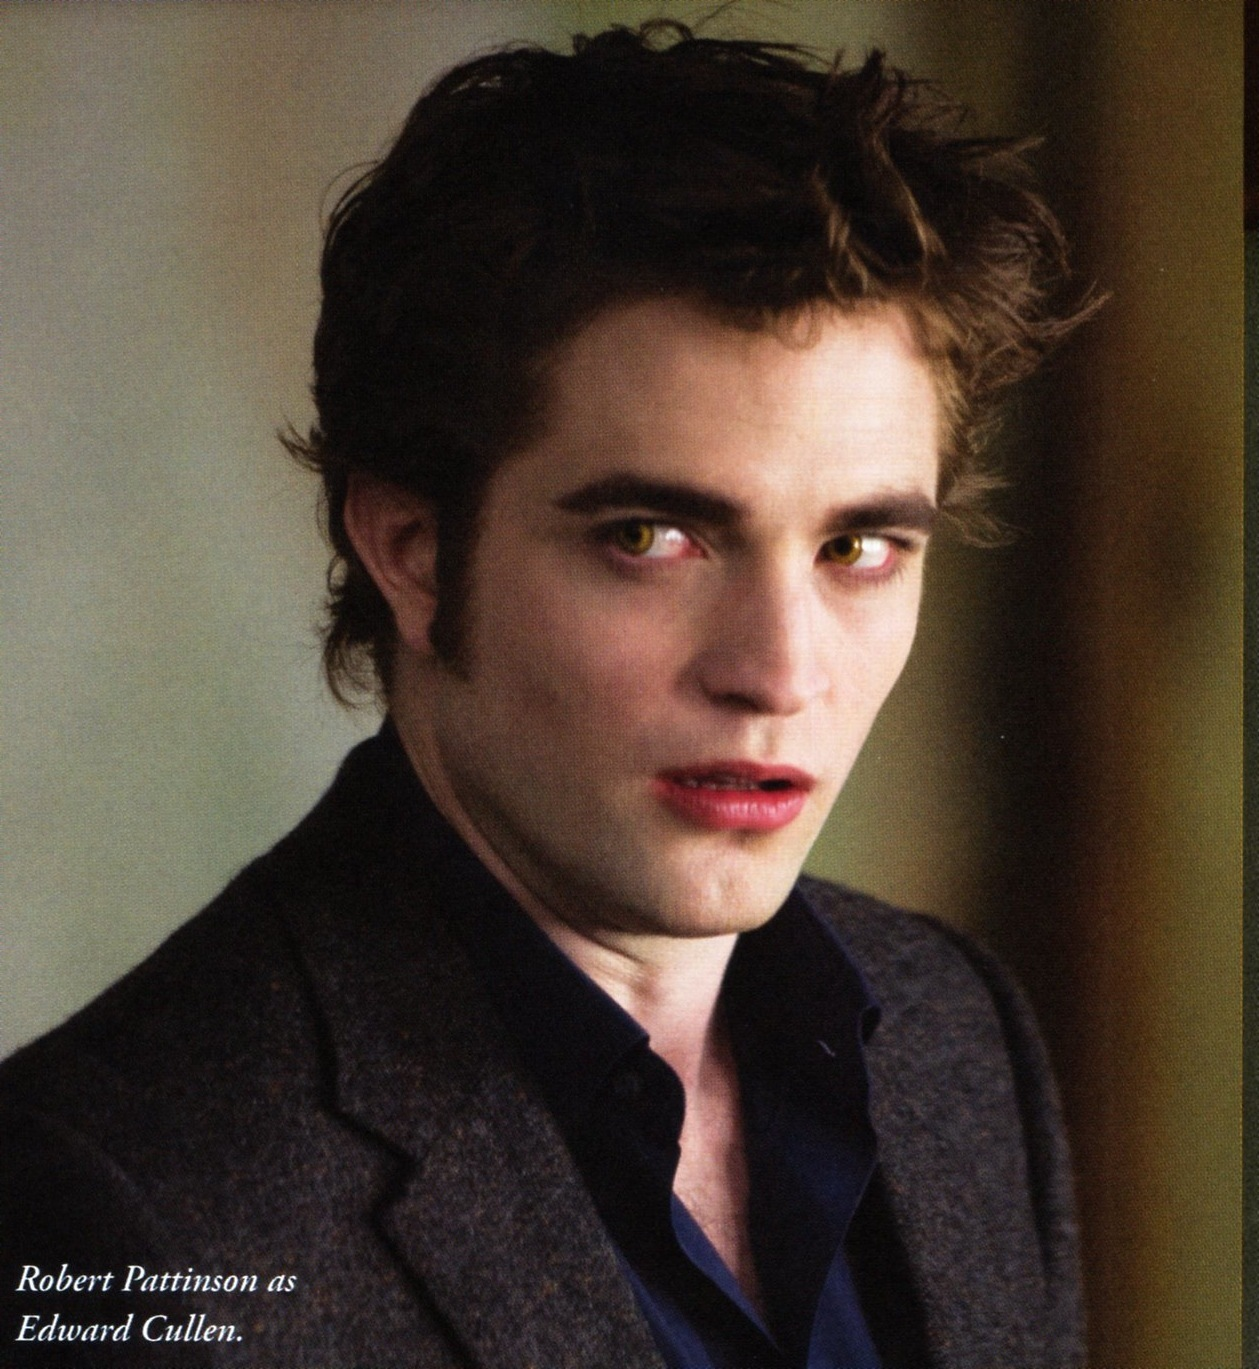 New Moon Still Hq Edward Cullen Photo 8462839 Fanpop